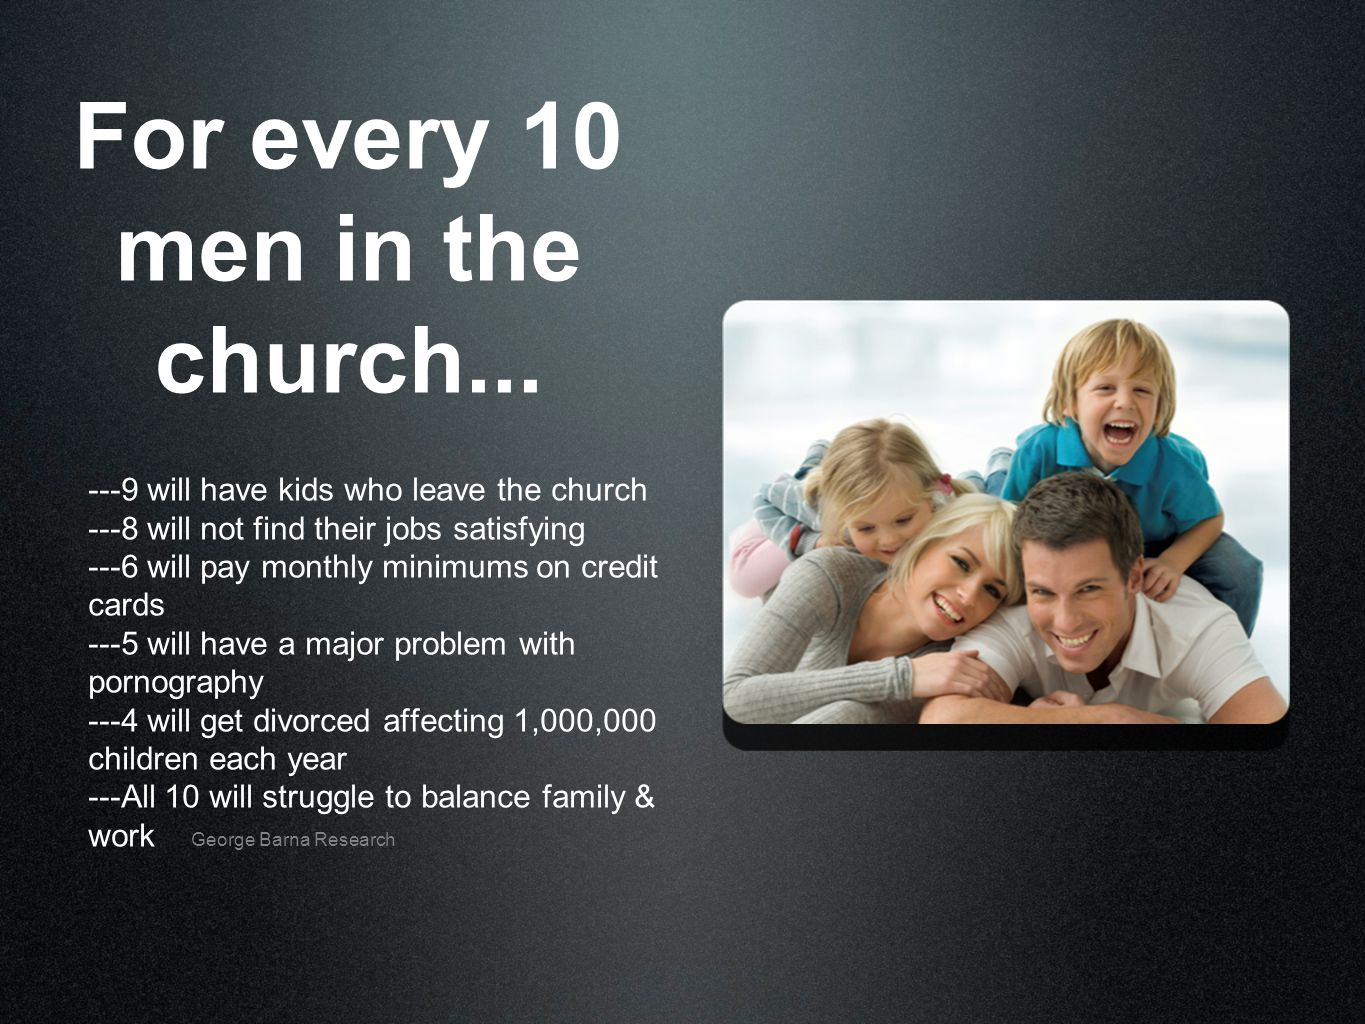 For every 10 men in the church...